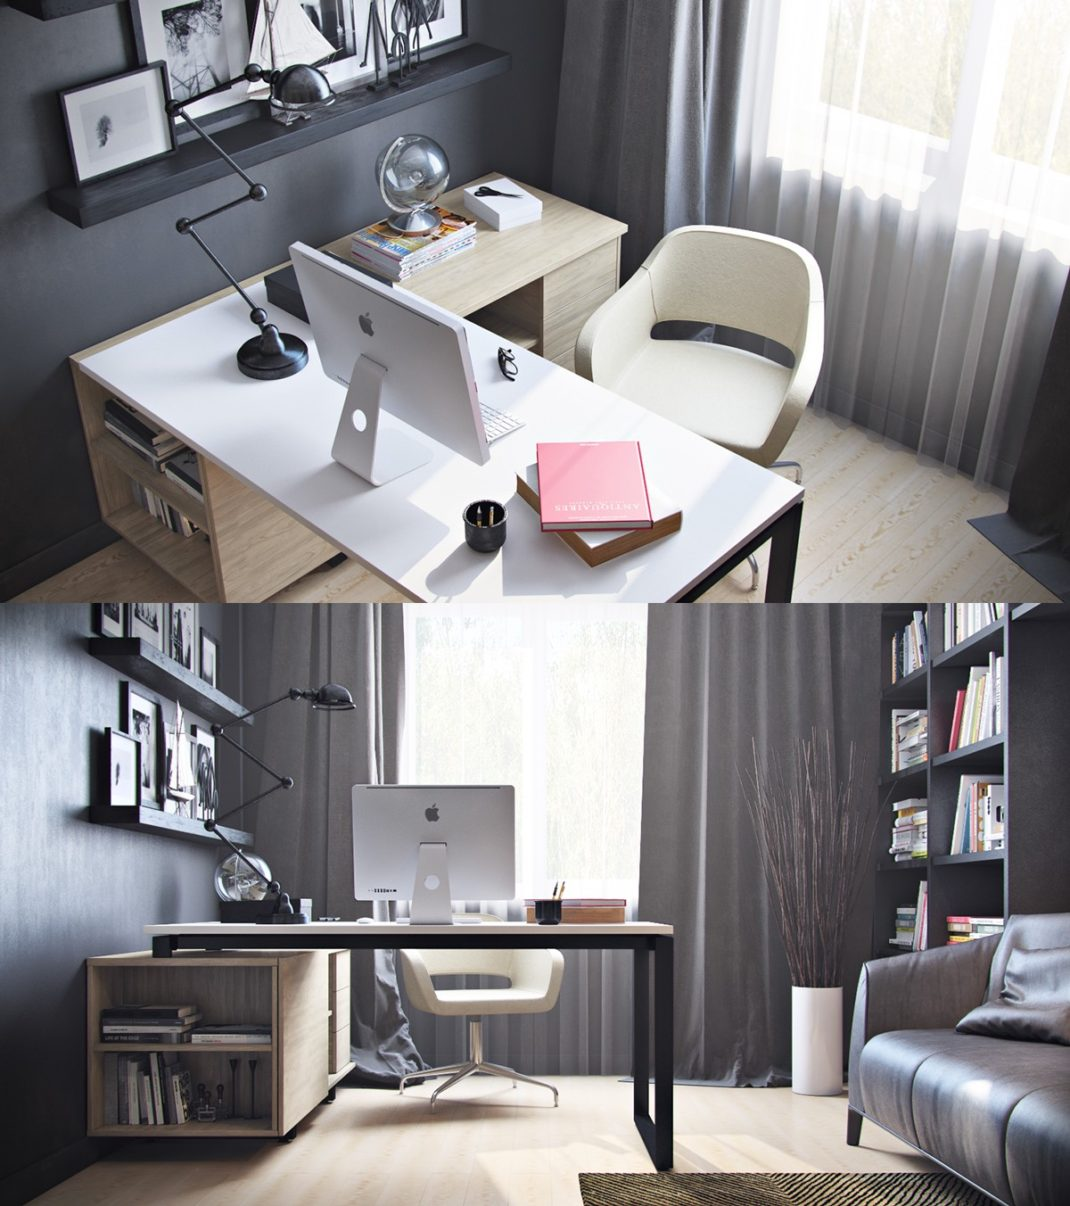 idee deco bureau 40 id es d co pour am nager un bureau la maison d co bureau loft idees deco. Black Bedroom Furniture Sets. Home Design Ideas